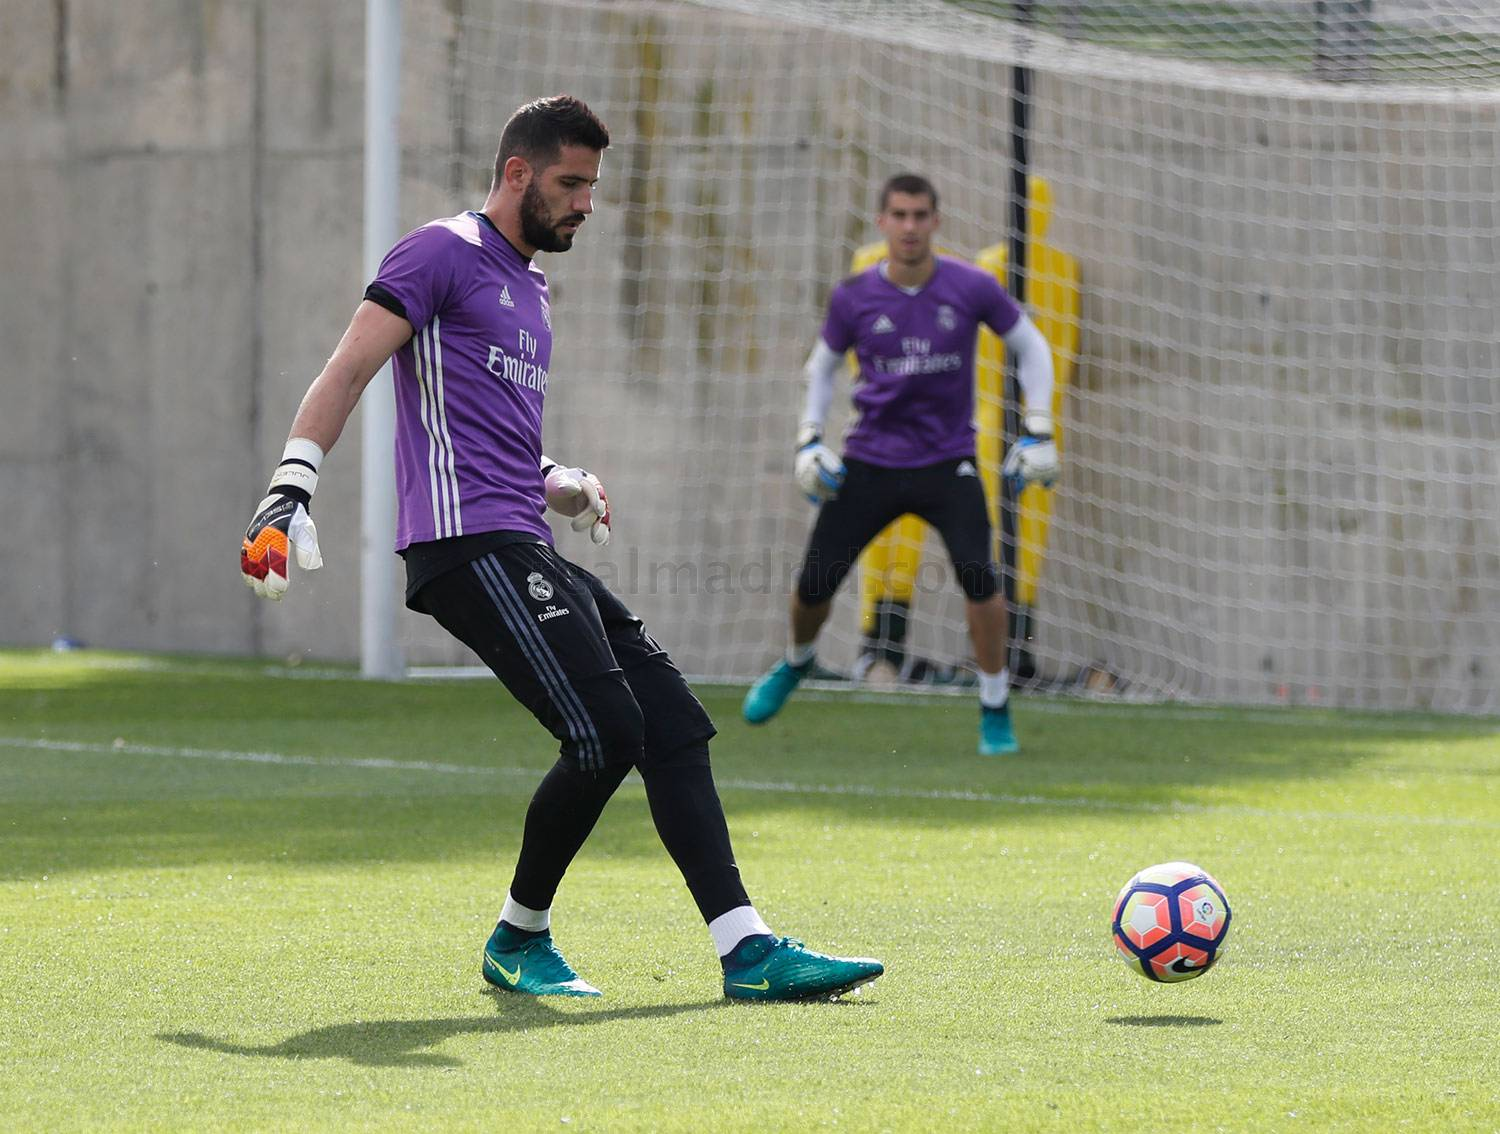 Real Madrid - Entrenamiento del Real Madrid - 06-10-2016